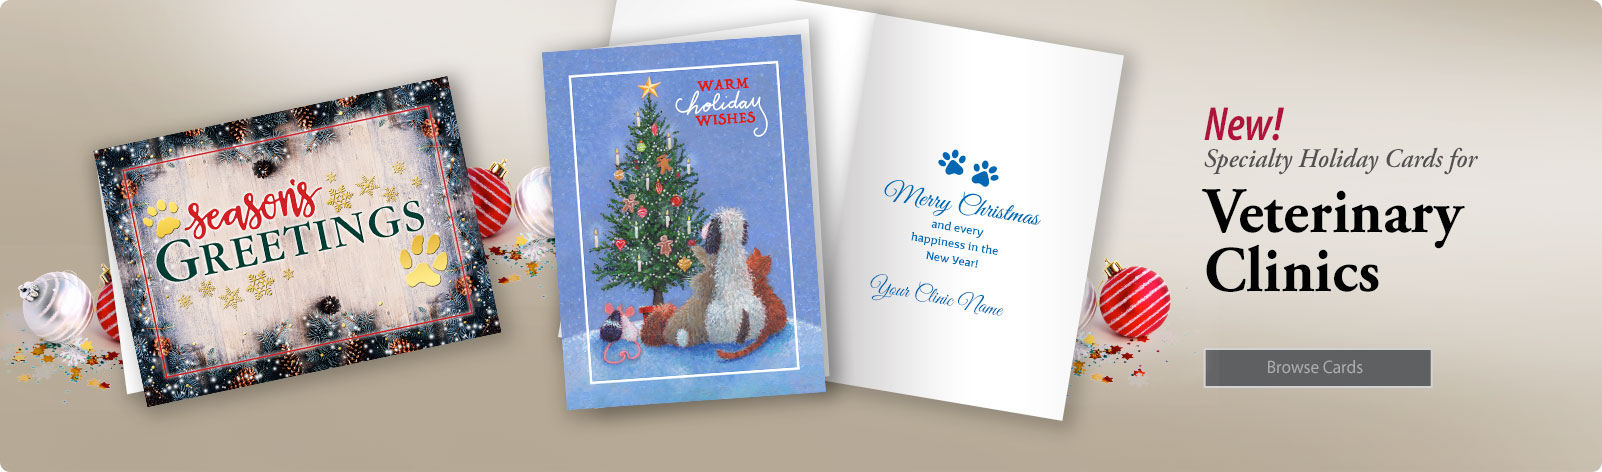 New Vet Holiday Card Designs Plus FREE Ground Shipping!